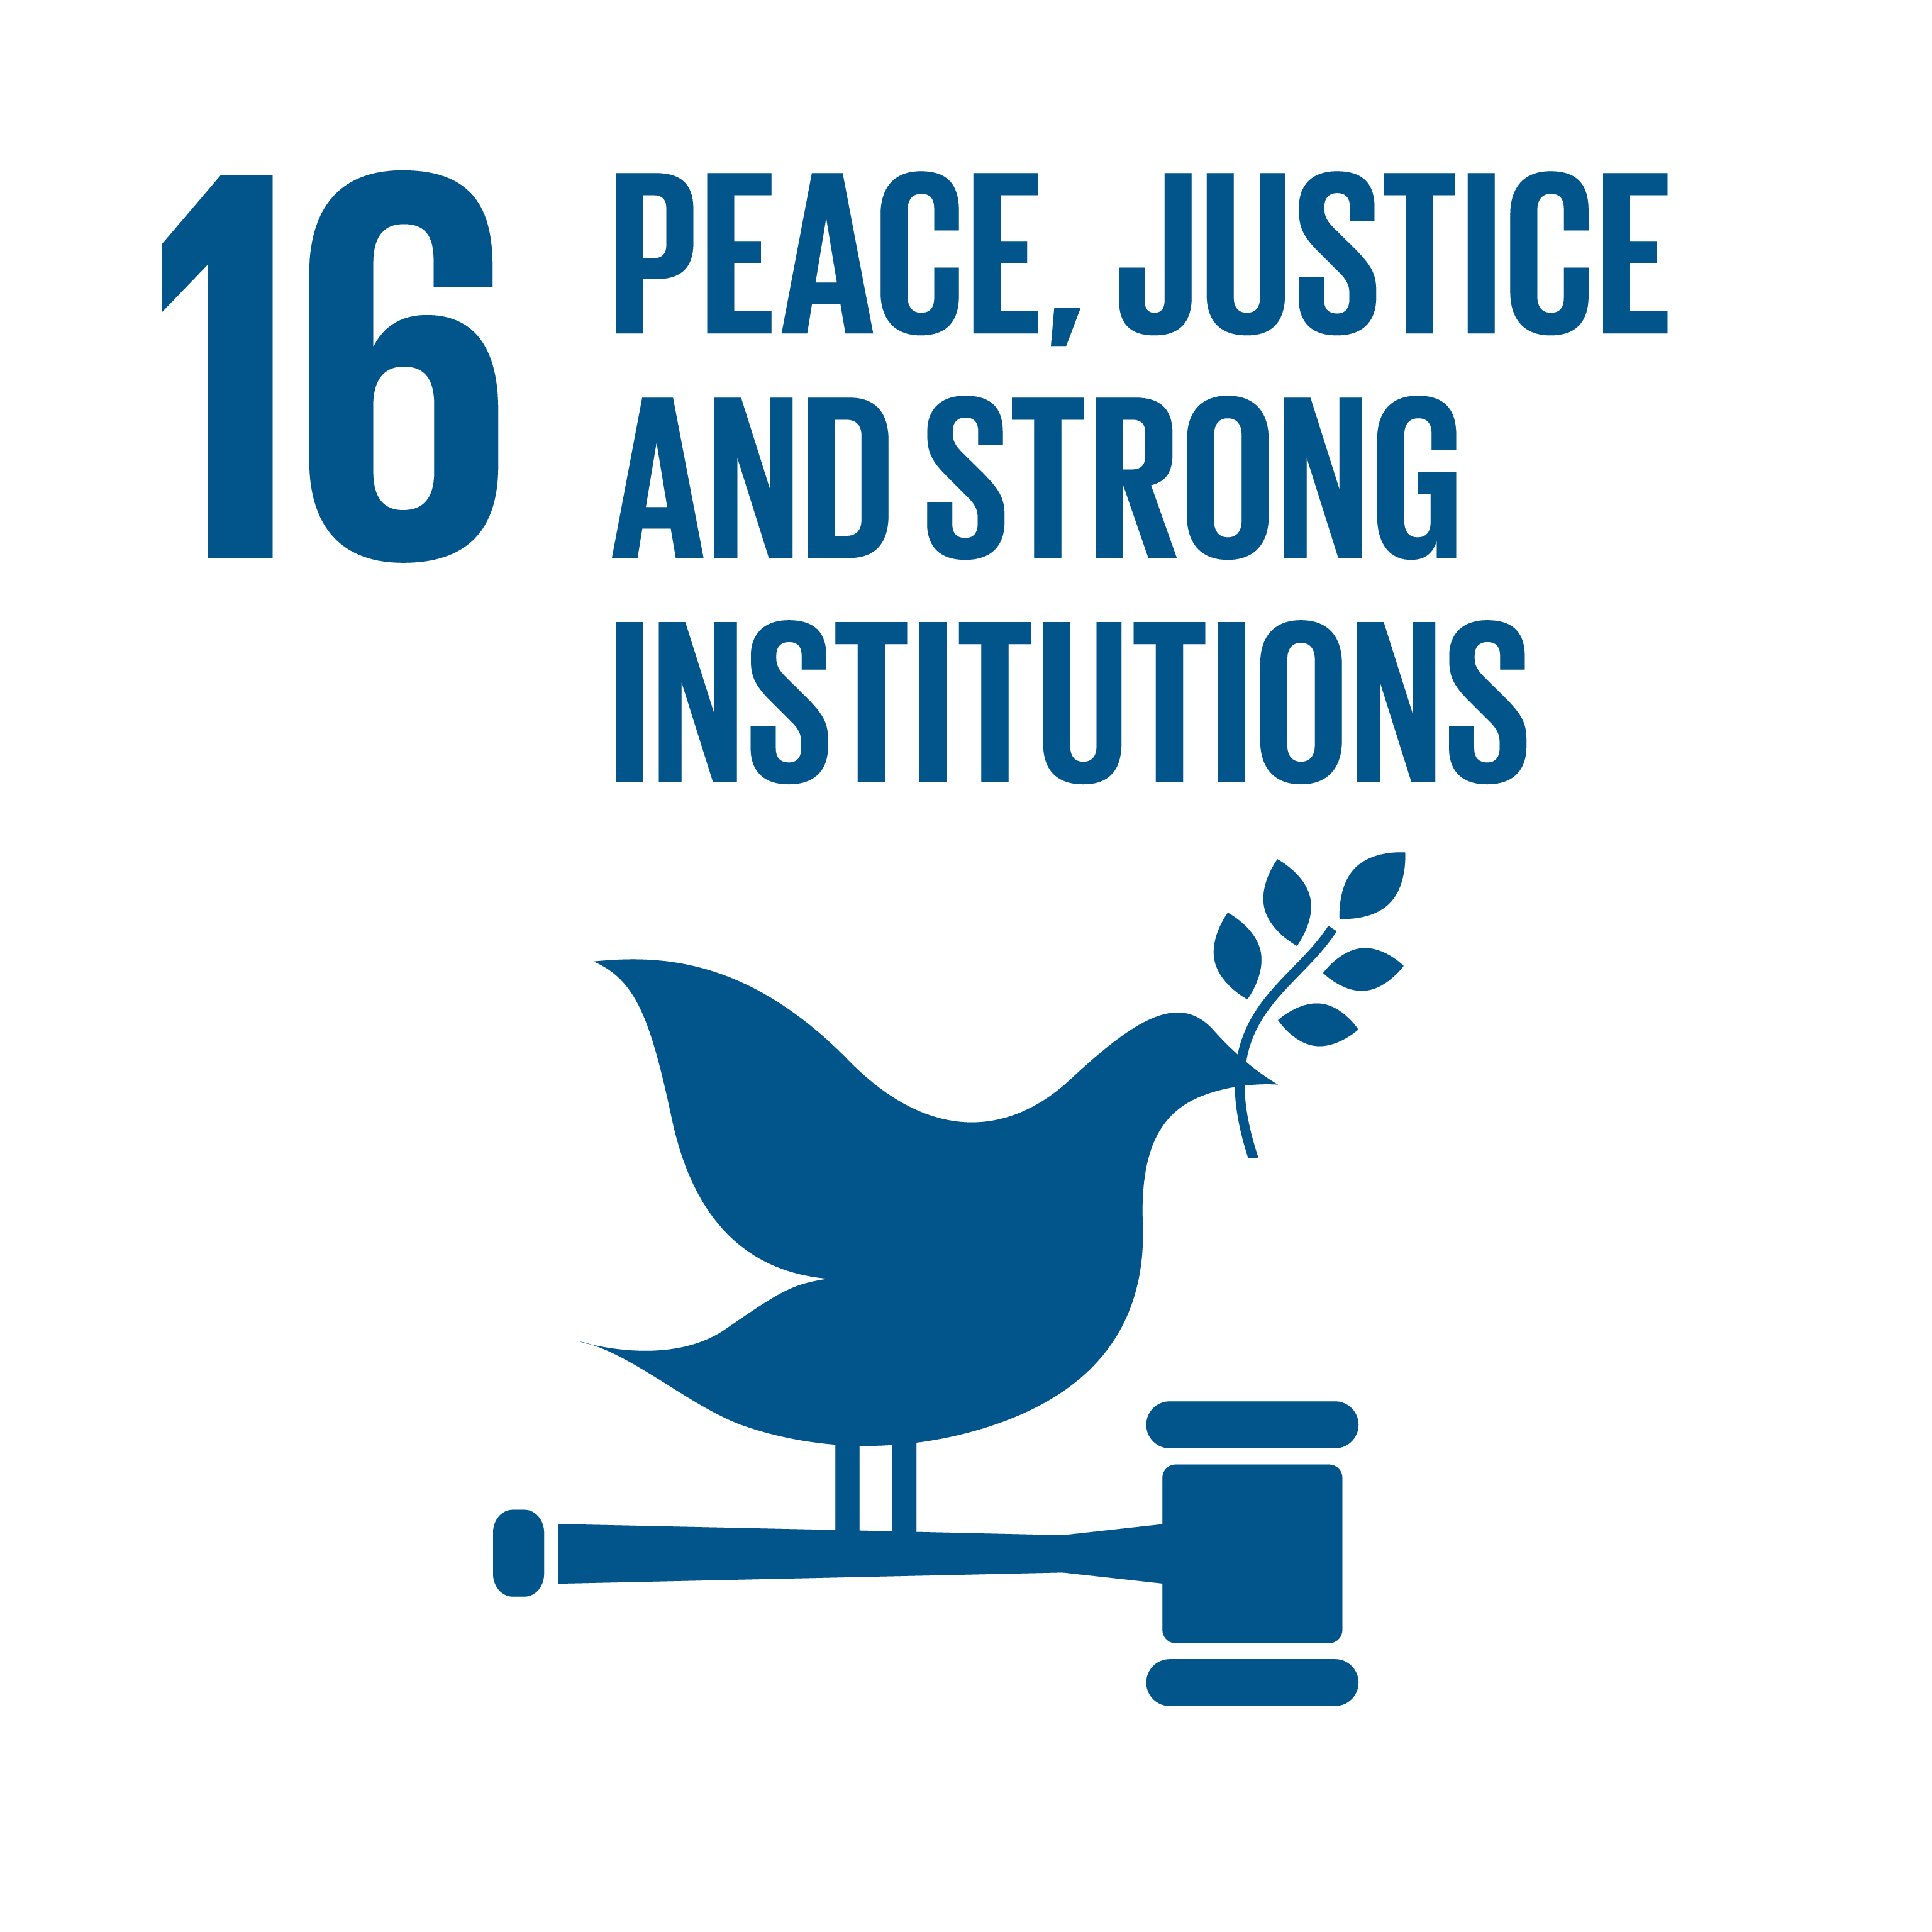 Sustainable Development Goals 16 peace justice strong institutions